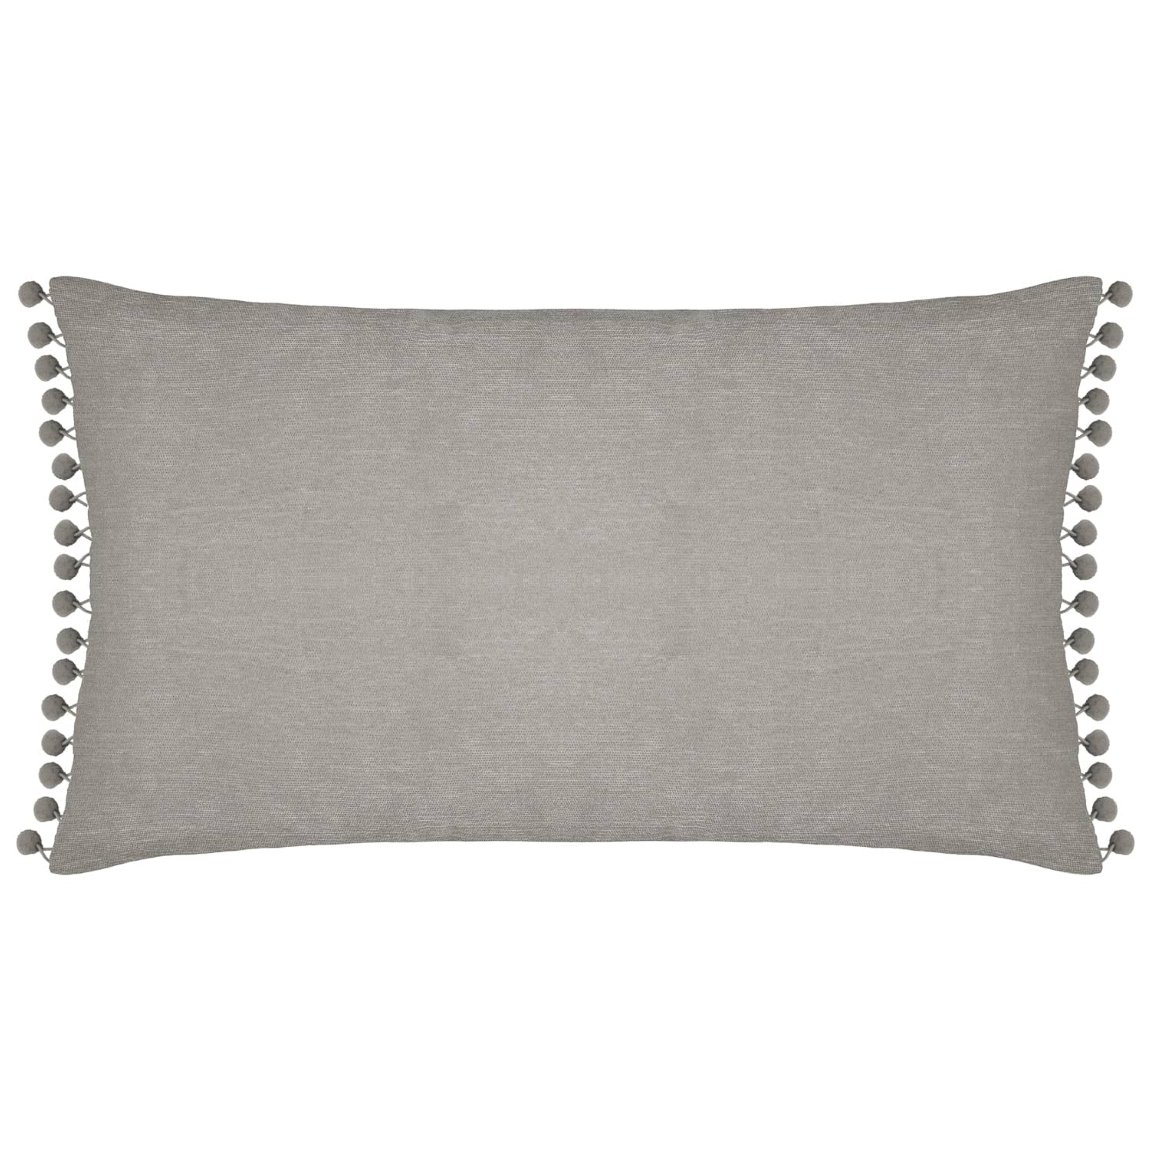 Pom Pom Pre-Filled Cushion - Grey